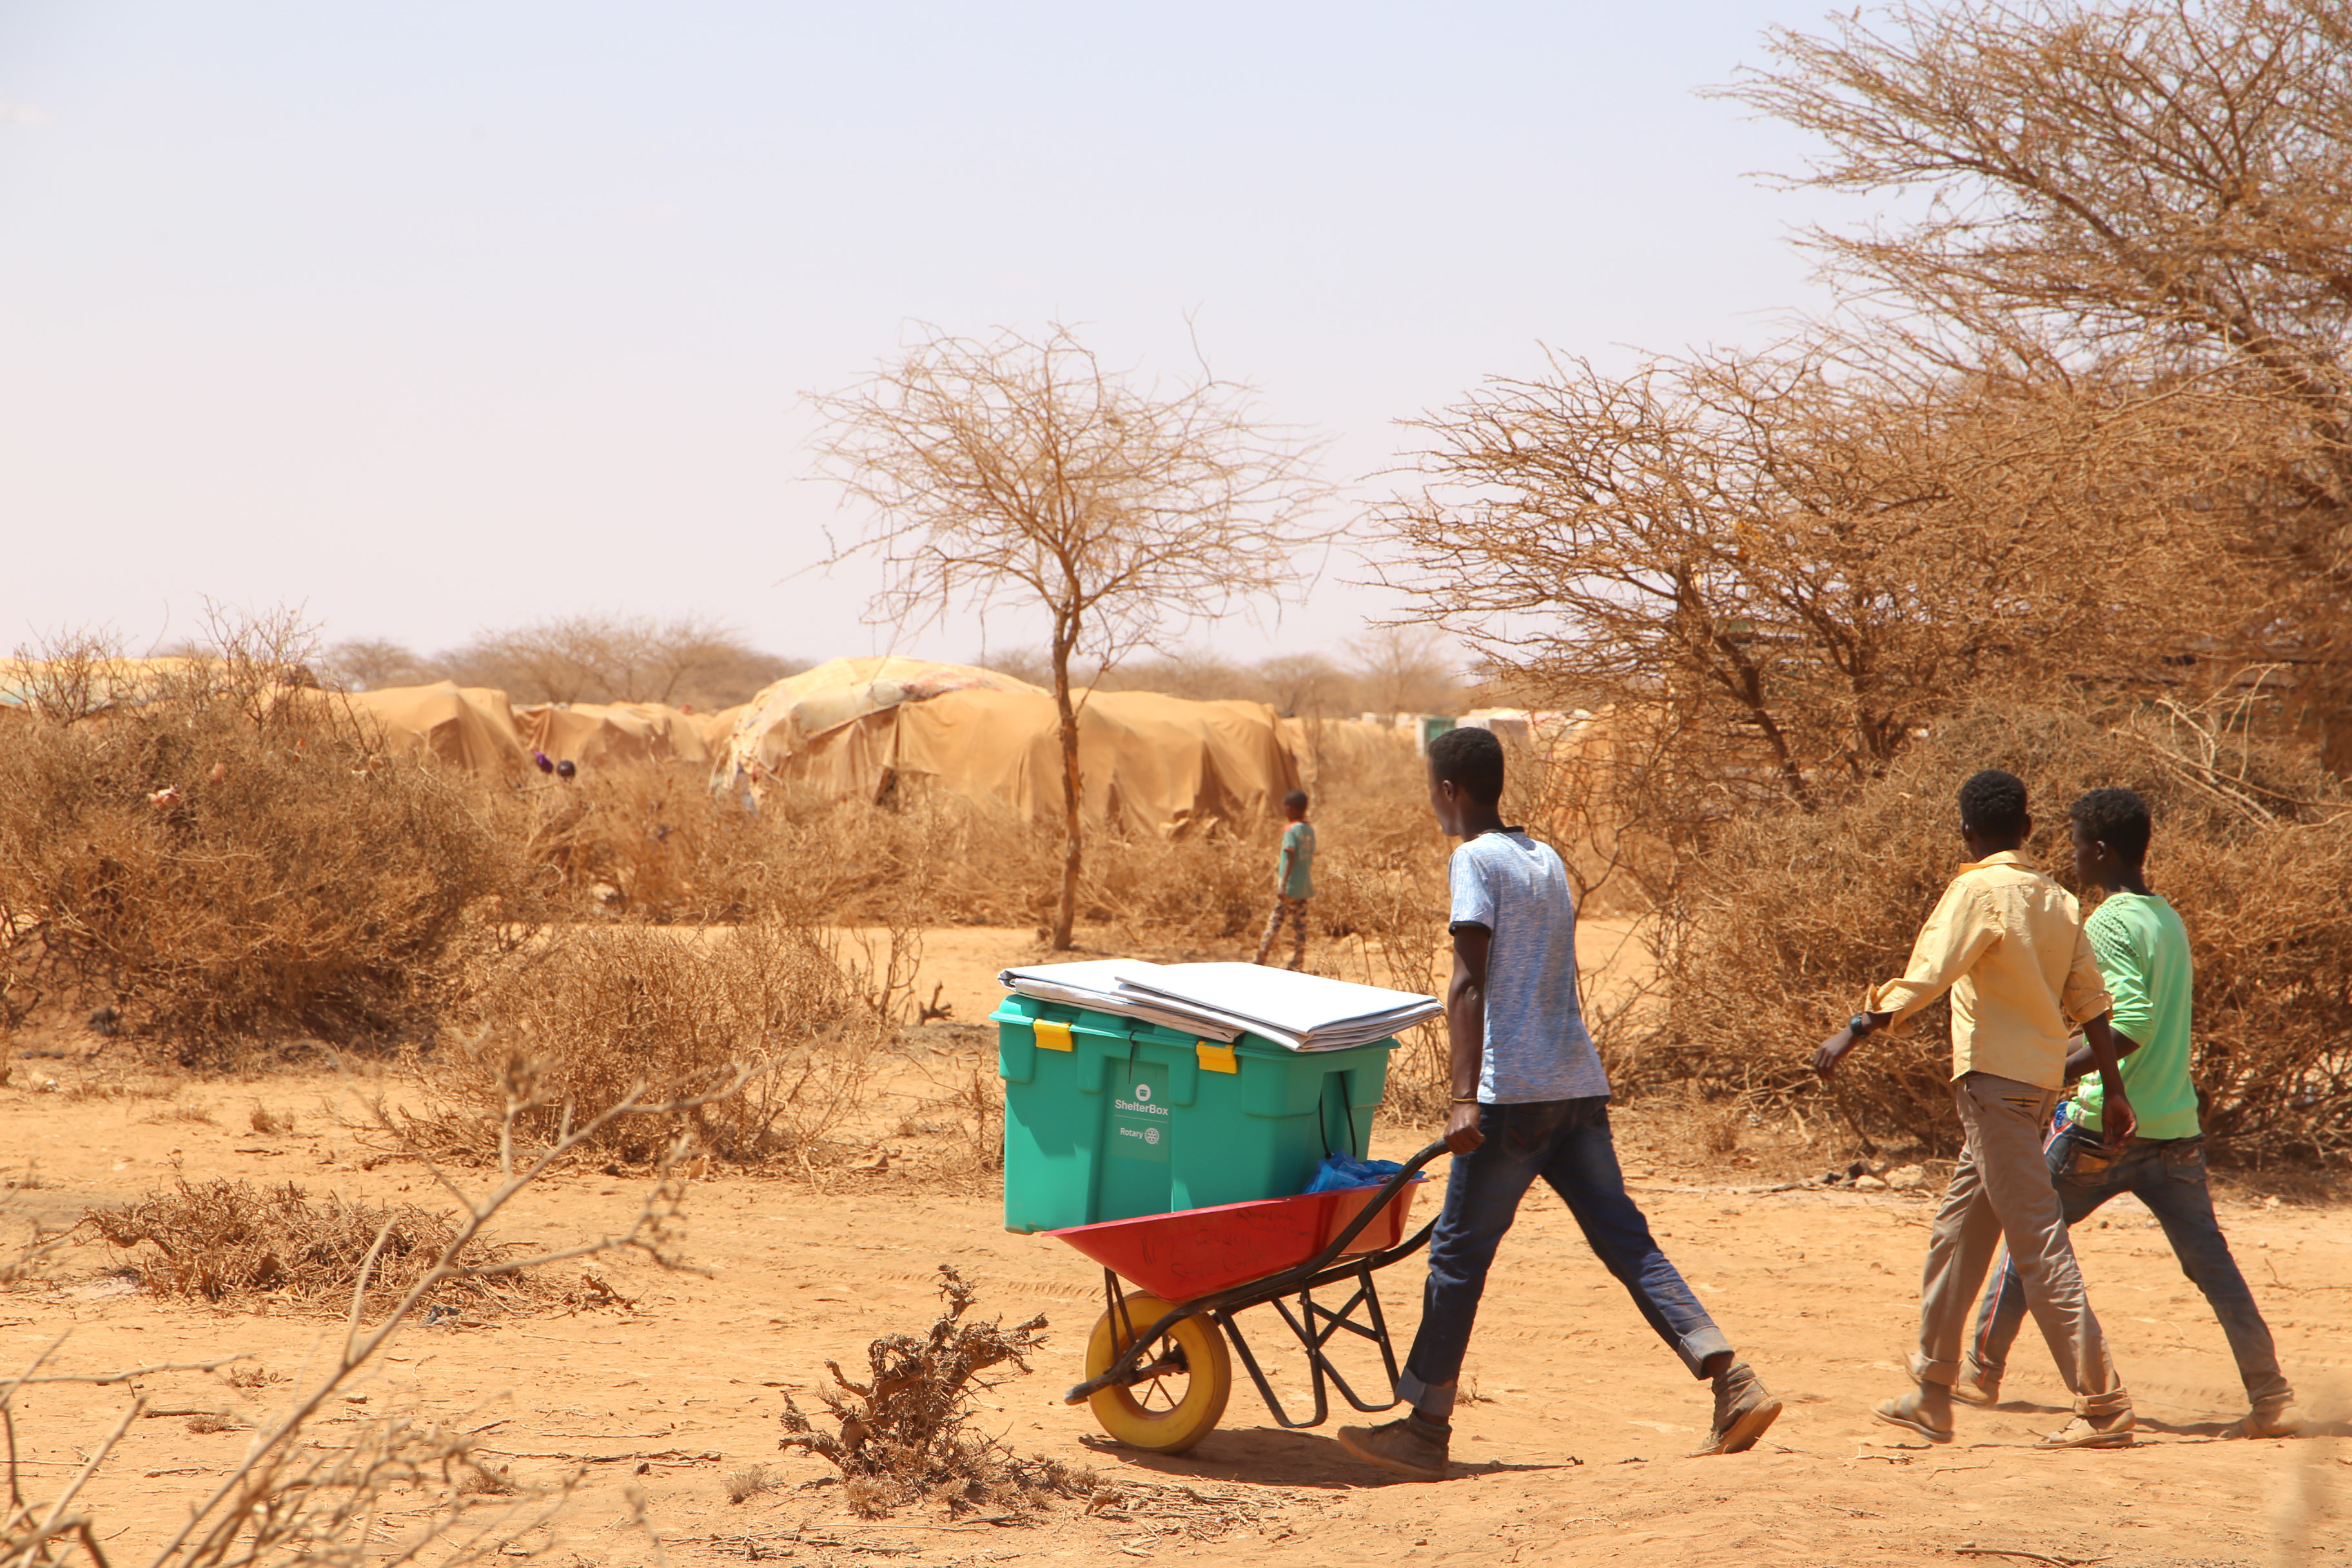 Somaliland Drought 2018 - family receives aid